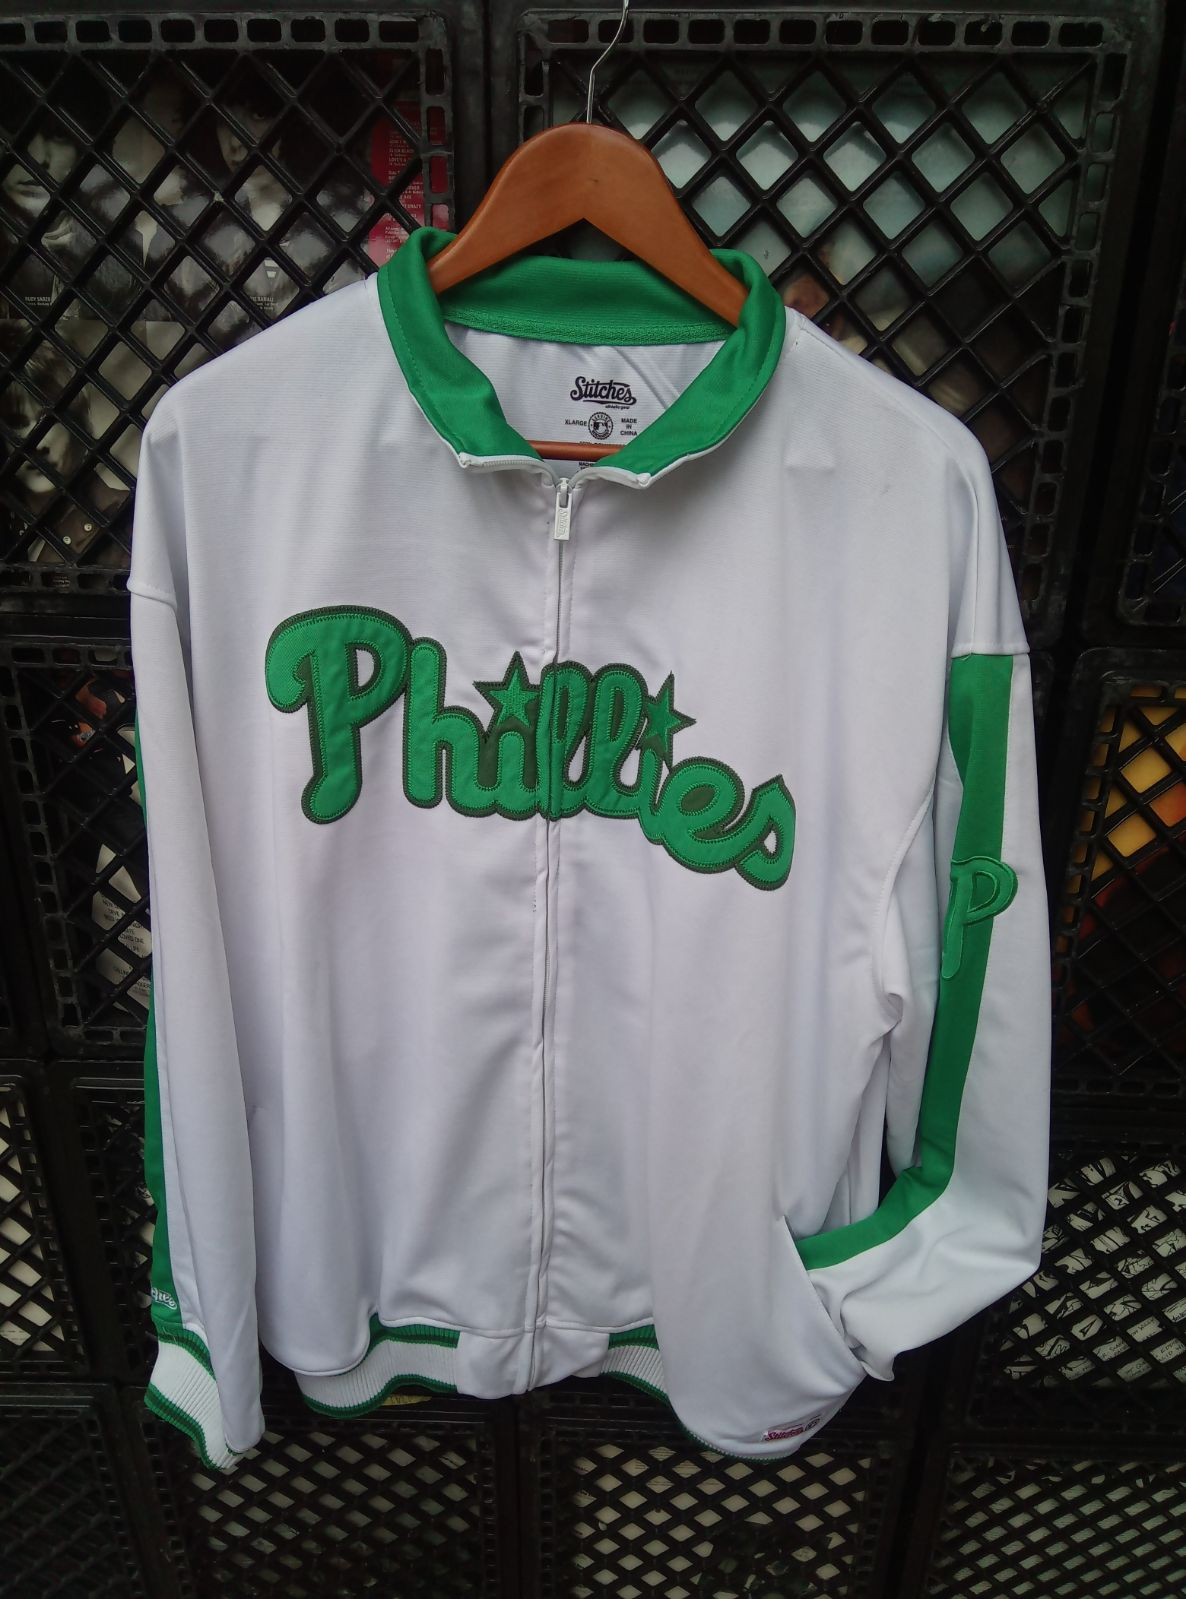 Phillies sport jacket by stitches